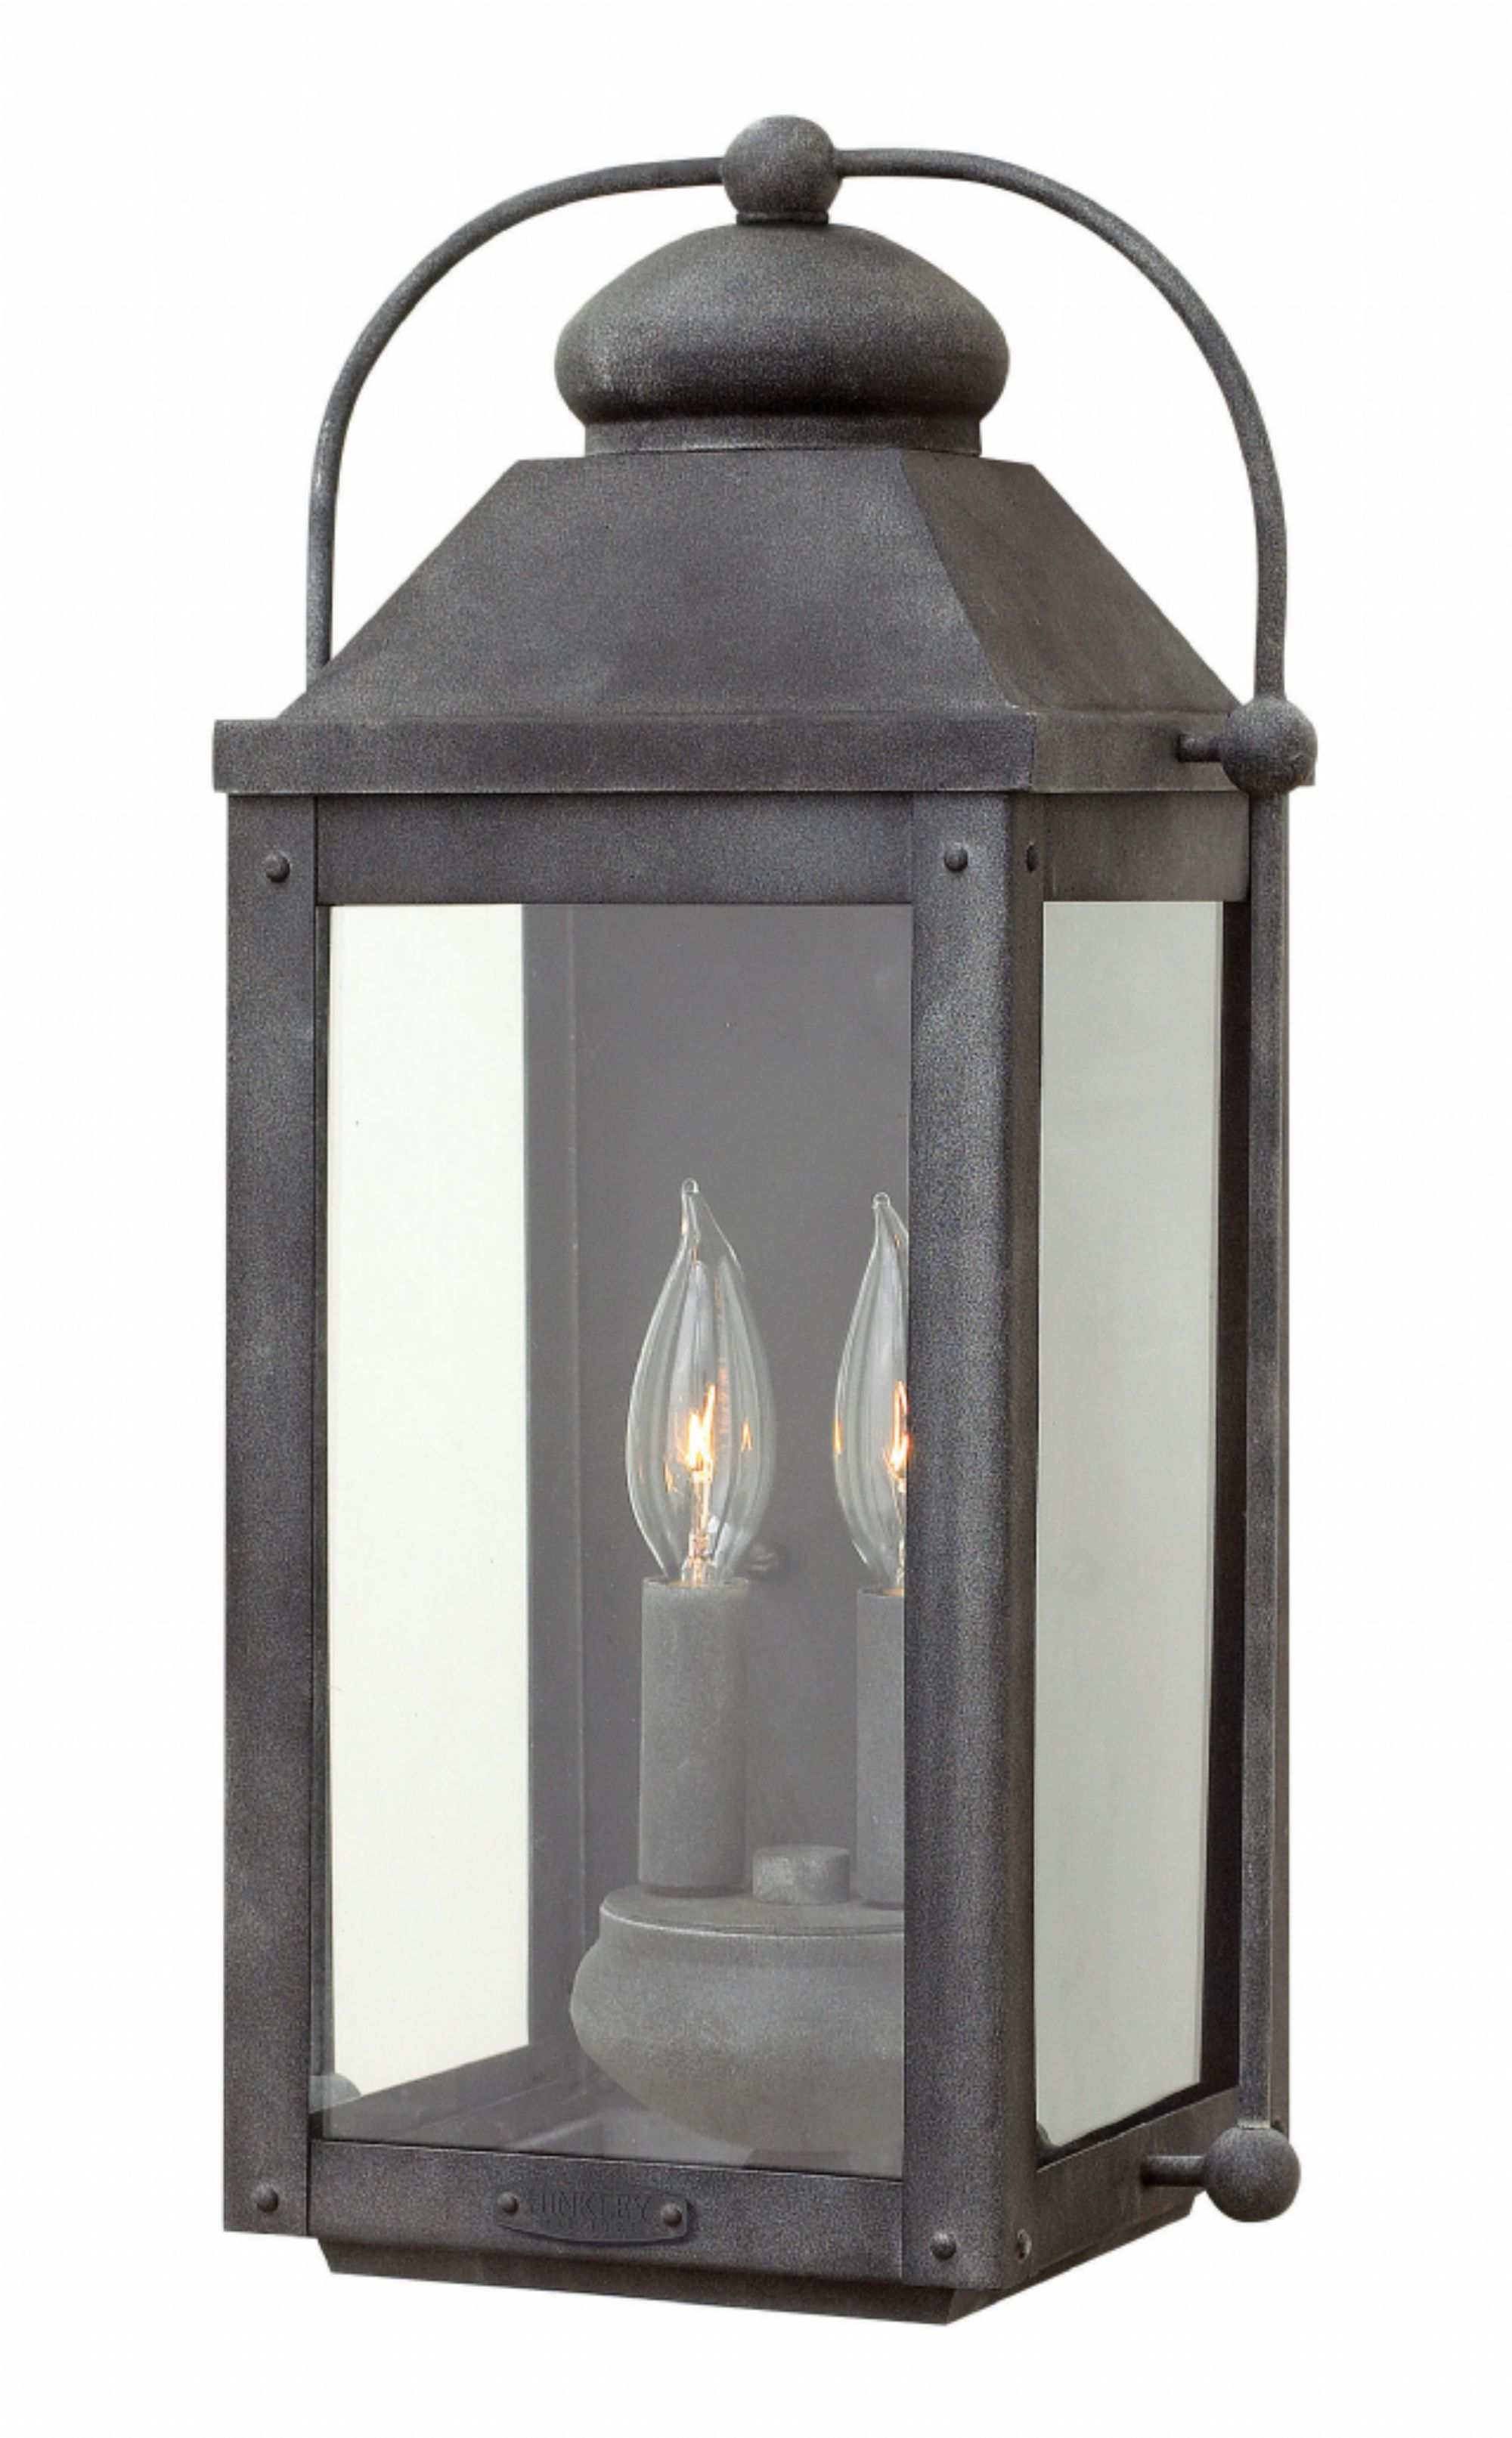 Outdoor Wall Lantern Lights Awesome Indoor Wall Light Fixtures  Lantern Light Fixture Hinkley Lighting Design Decoration